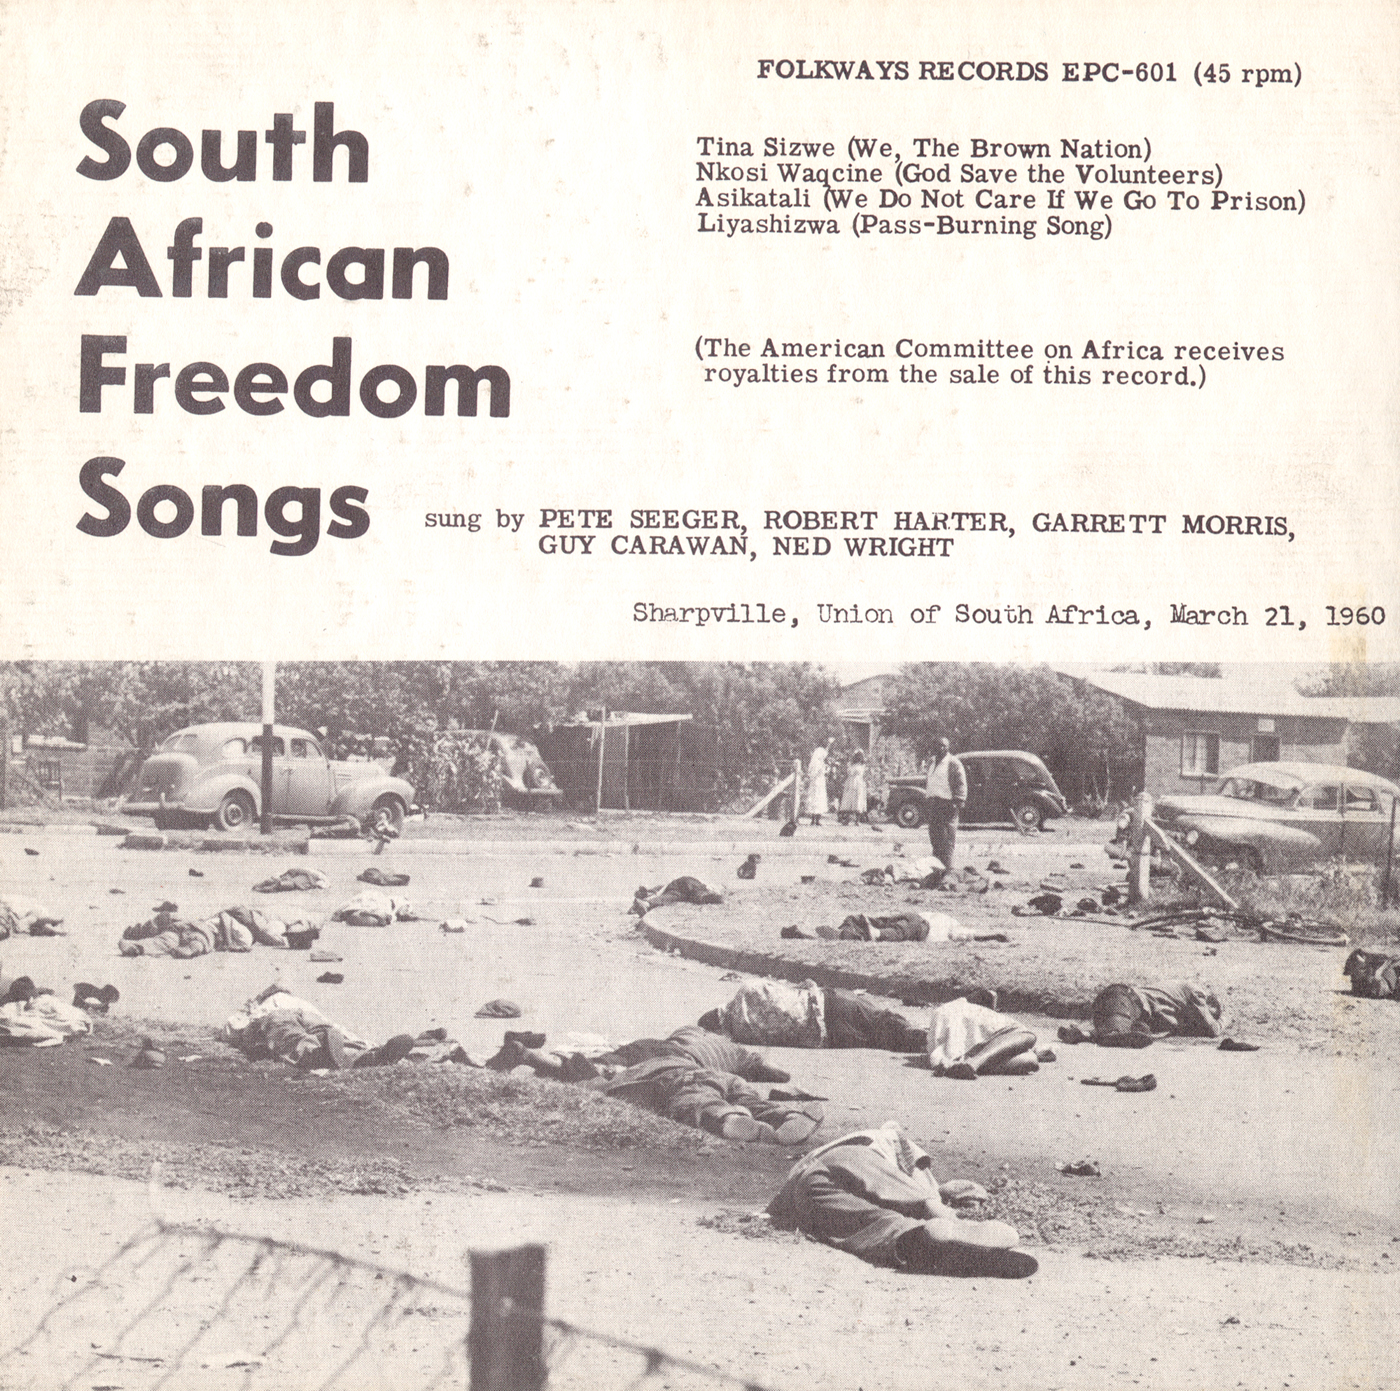 This land is mine: south african freedom songs | smithsonian.